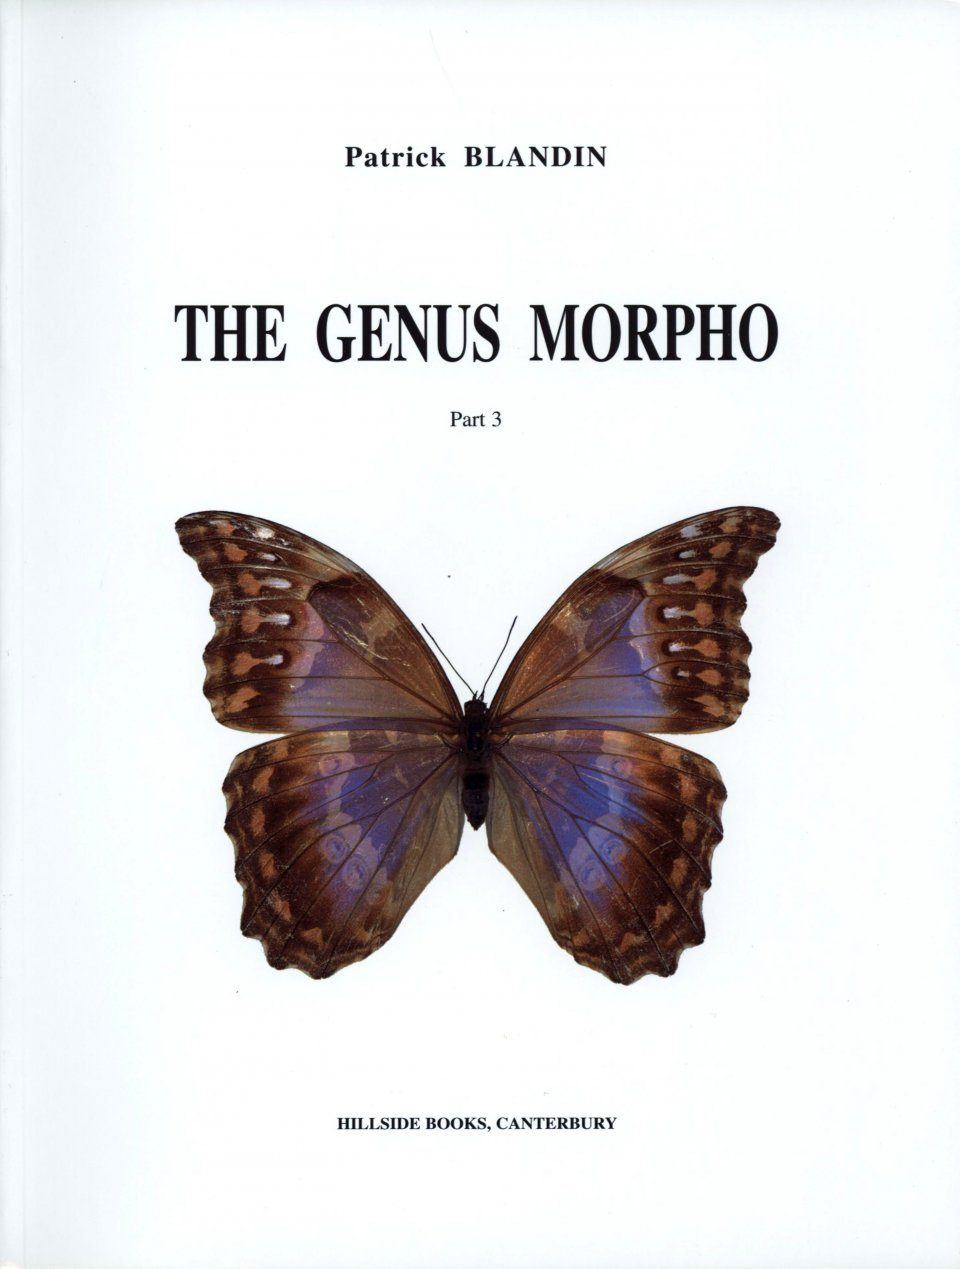 Neotropical Butterflies, Volume 3: The Genus Morpho, Part 3